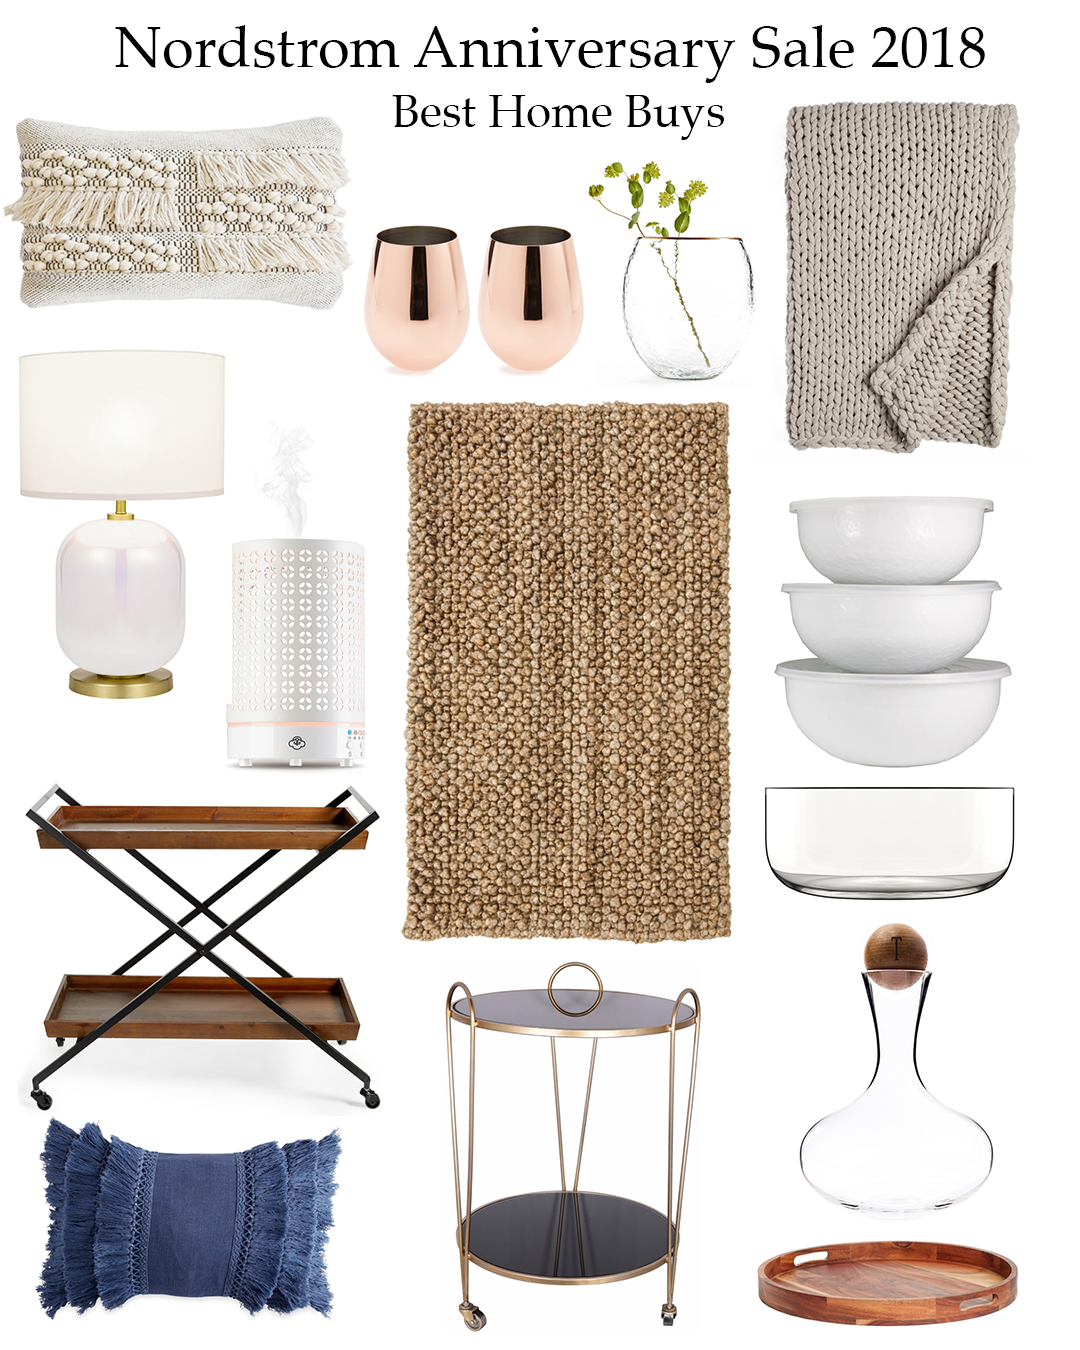 Nordstrom Anniversary Sale Best Home Buys